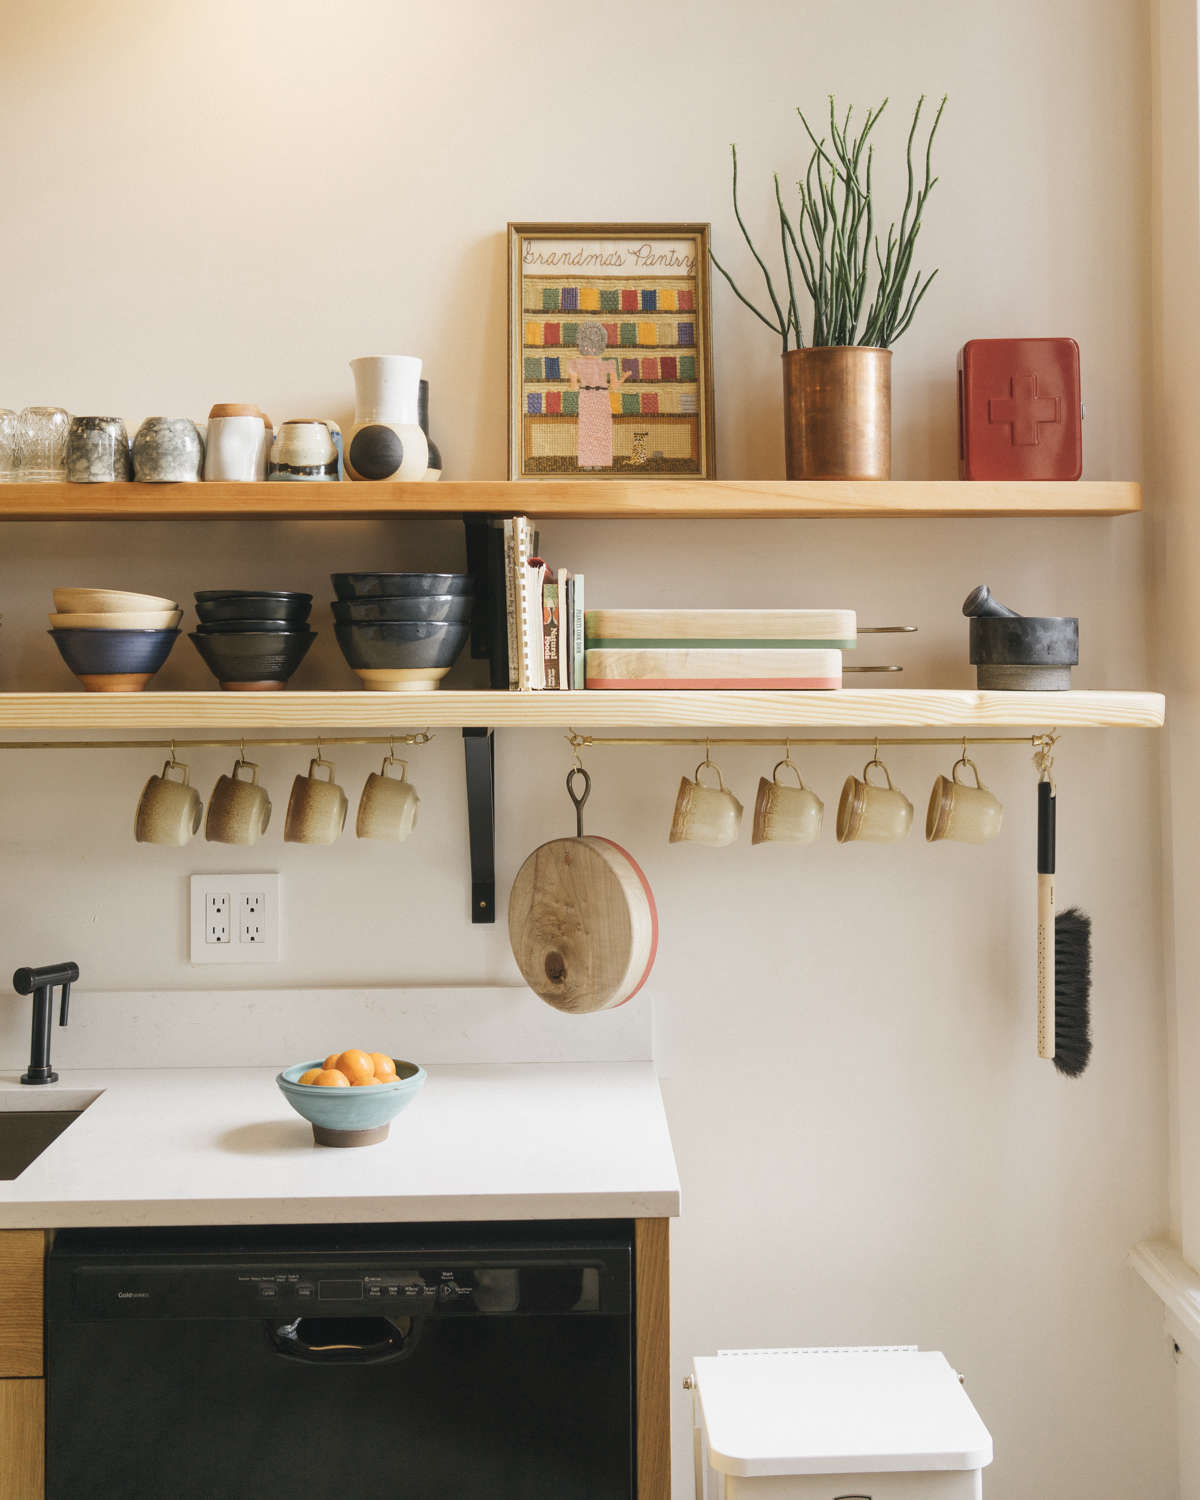 The plates, bowls, and cups are a mix of garage-sale finds and work by Portland ceramicist Addy Kessler. The open shelves are made of fir planks with off-the-shelf brackets.